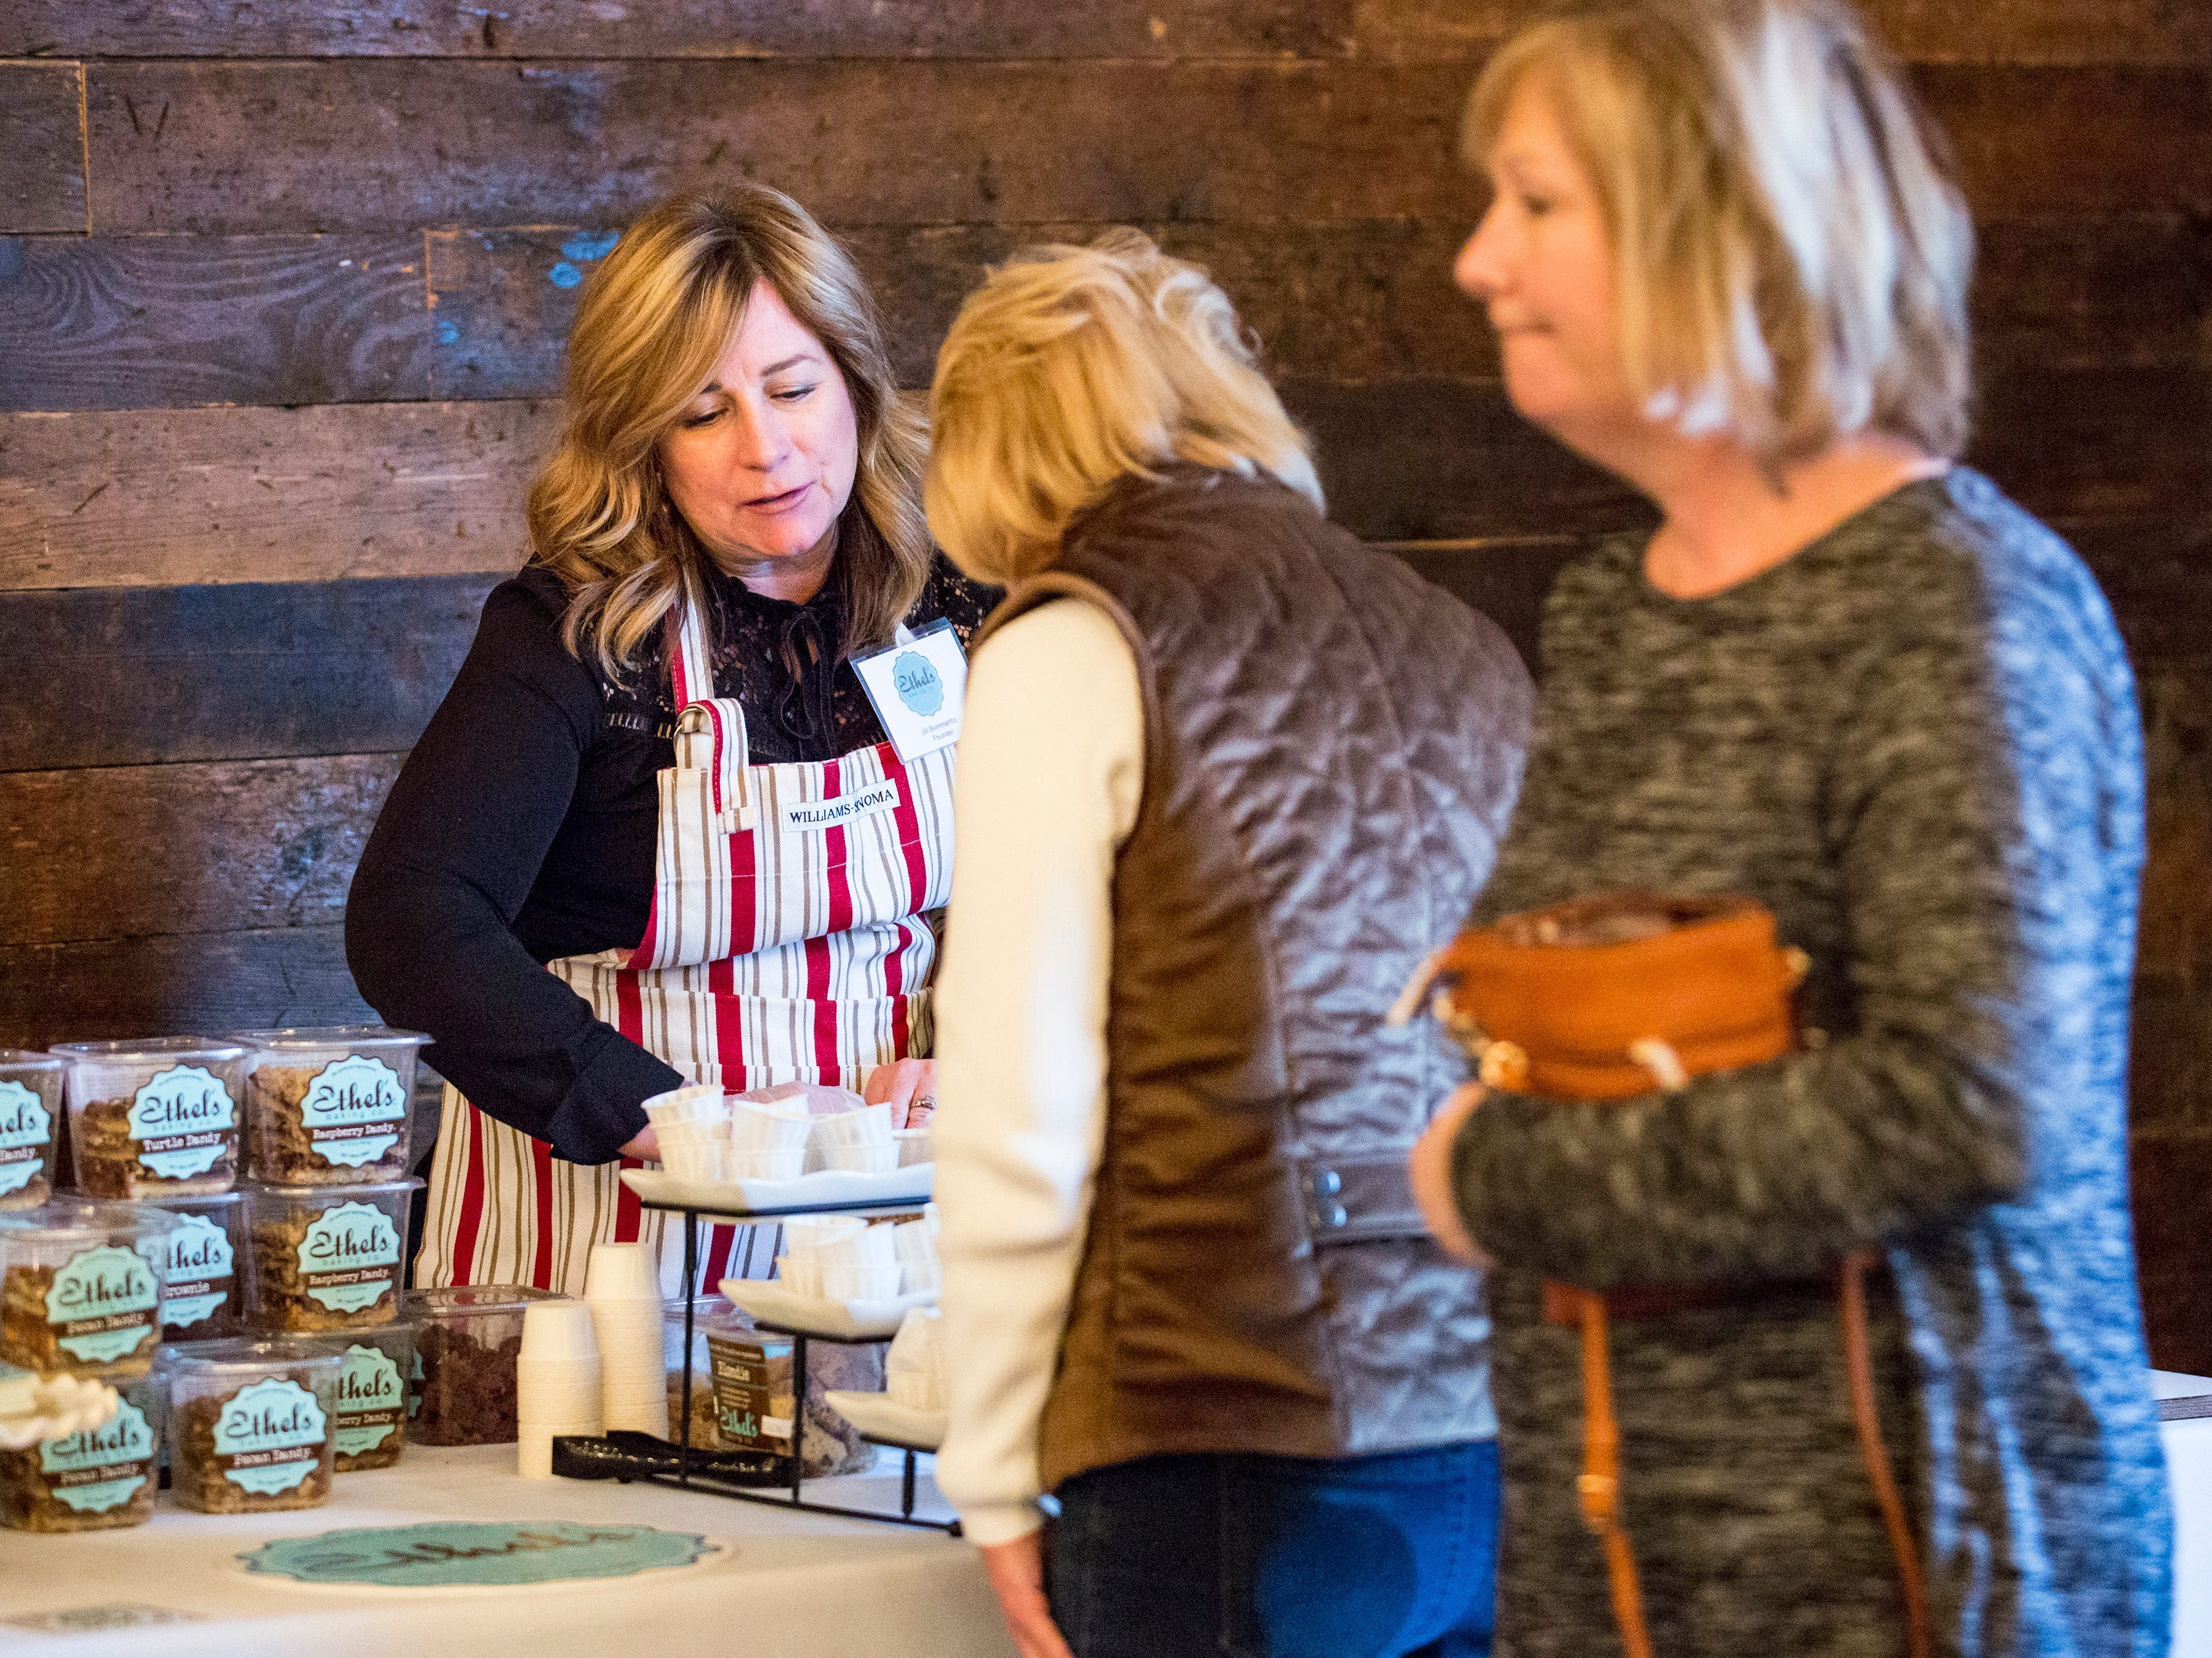 Jill Bommarito, founder of Ethel's Baking Co., chats with a guest during the Whisked event at the Great Lakes Culinary Center in Southfield, Mich., Sunday, Nov. 18, 2018.